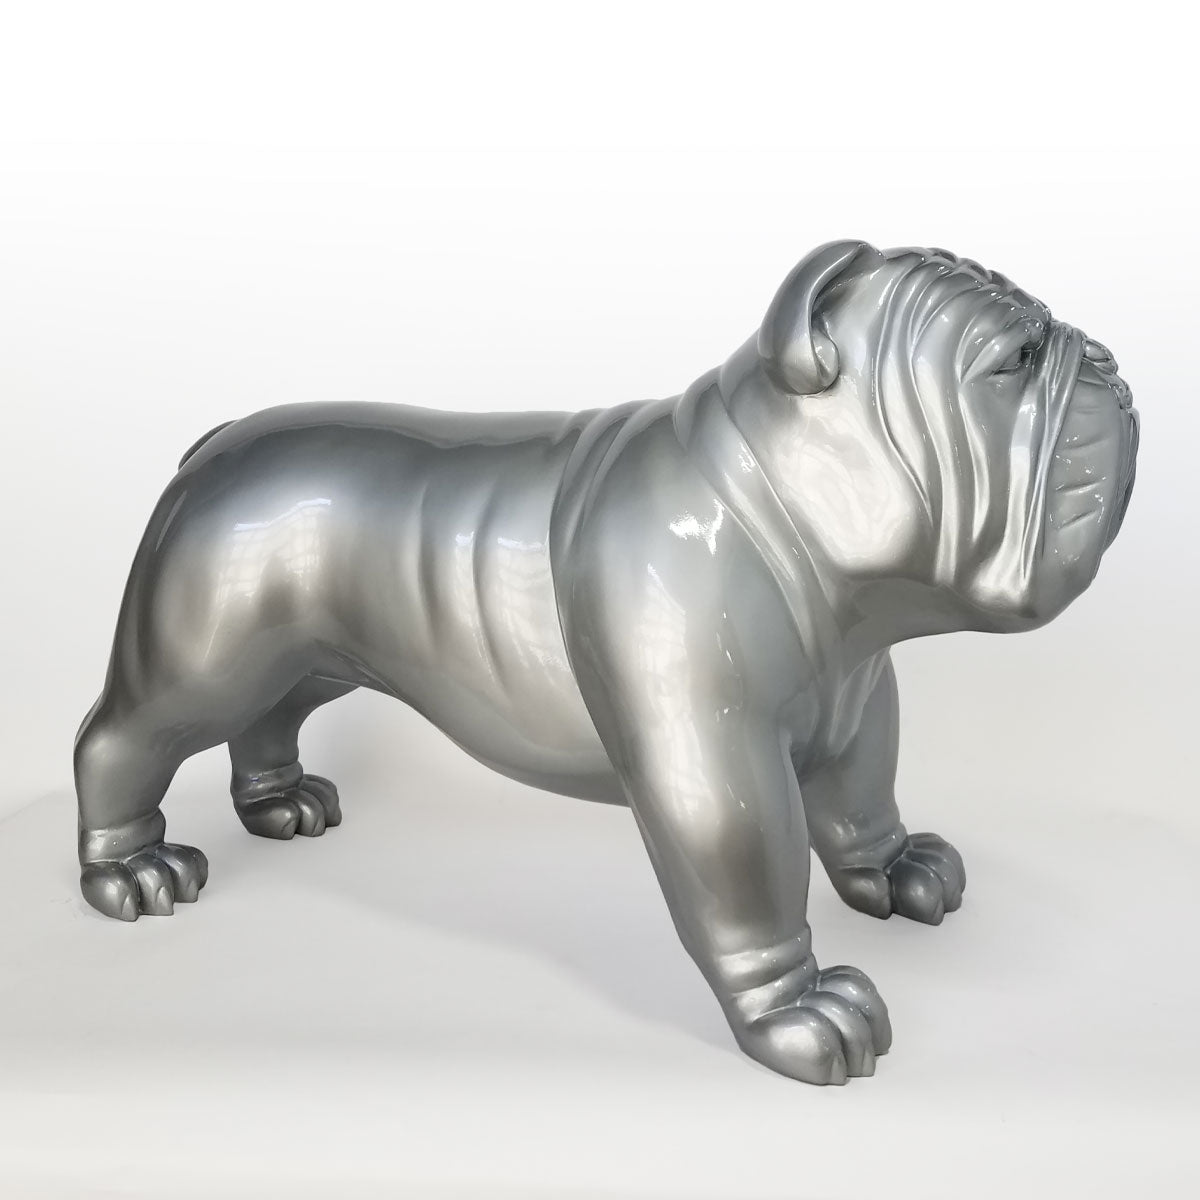 Silver Bulldog side view facing right.